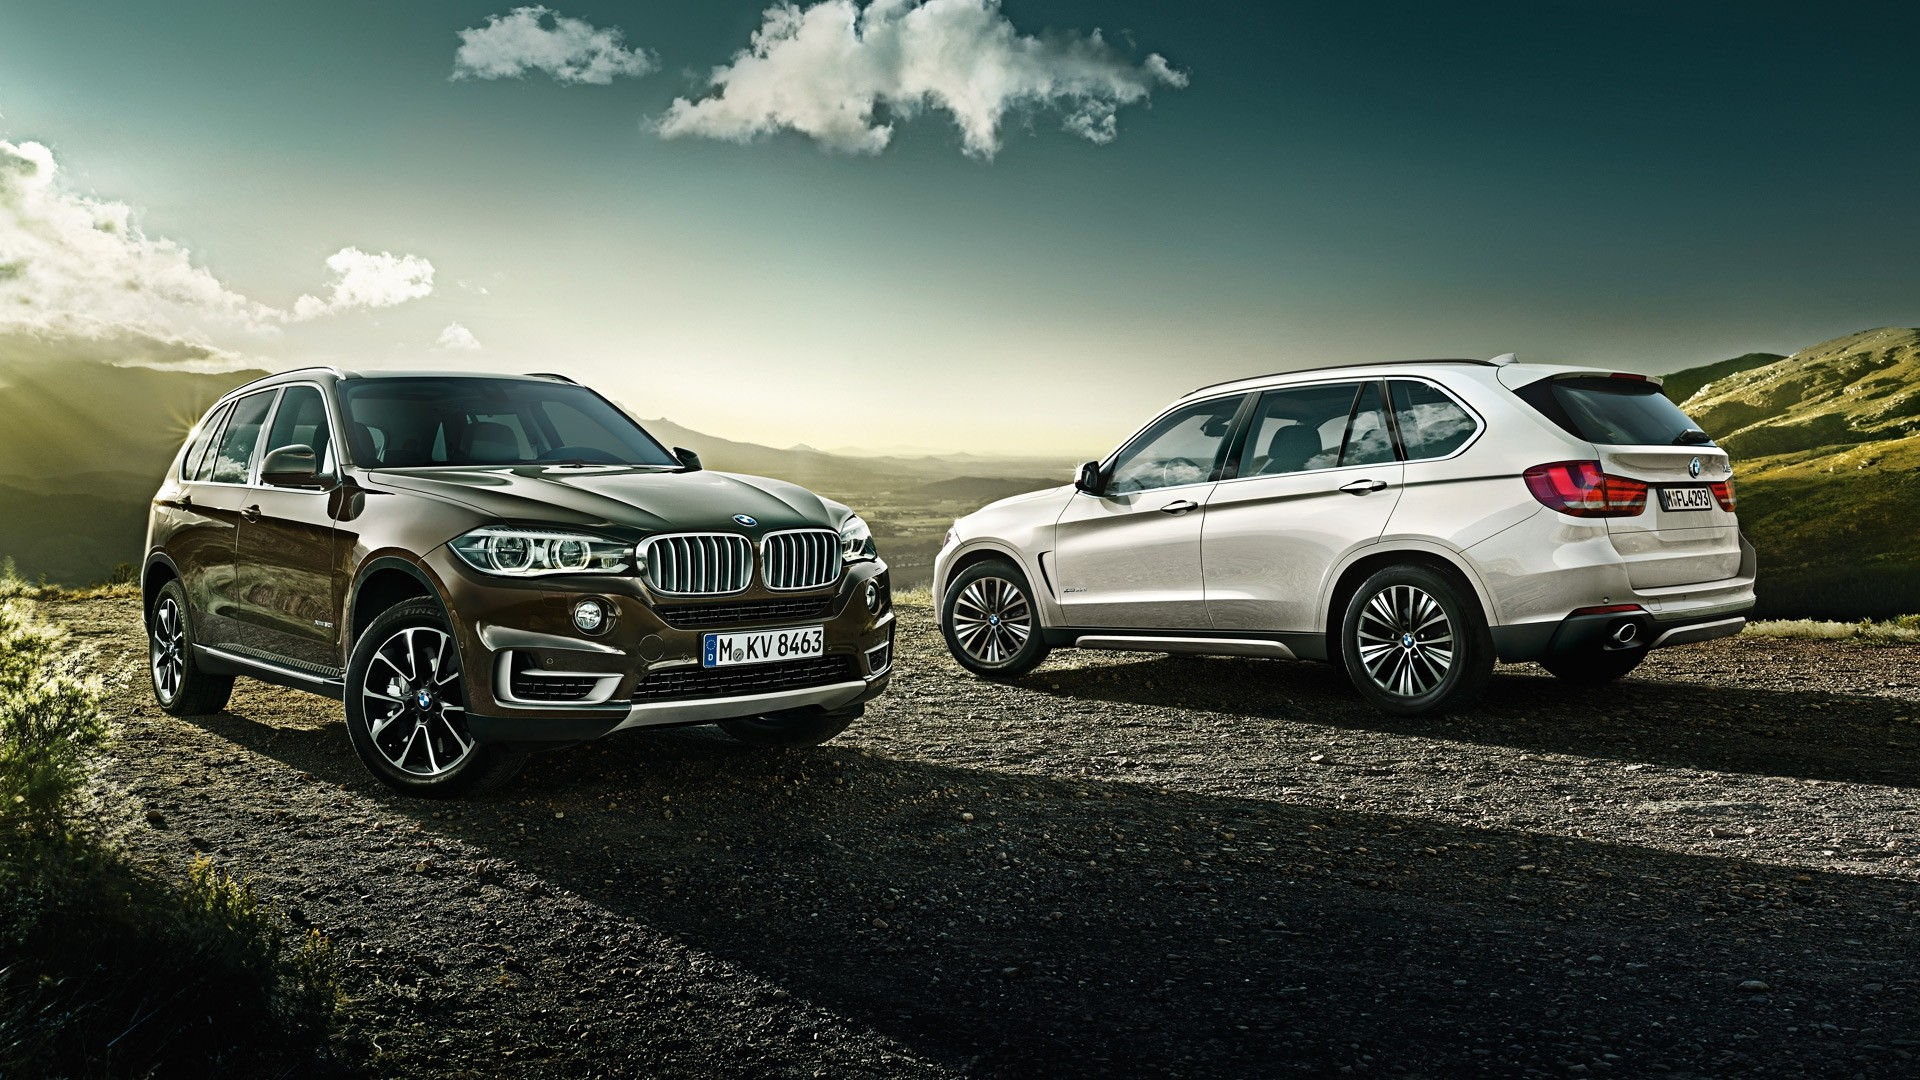 1920x1080 Bmw X5 Wallpapers